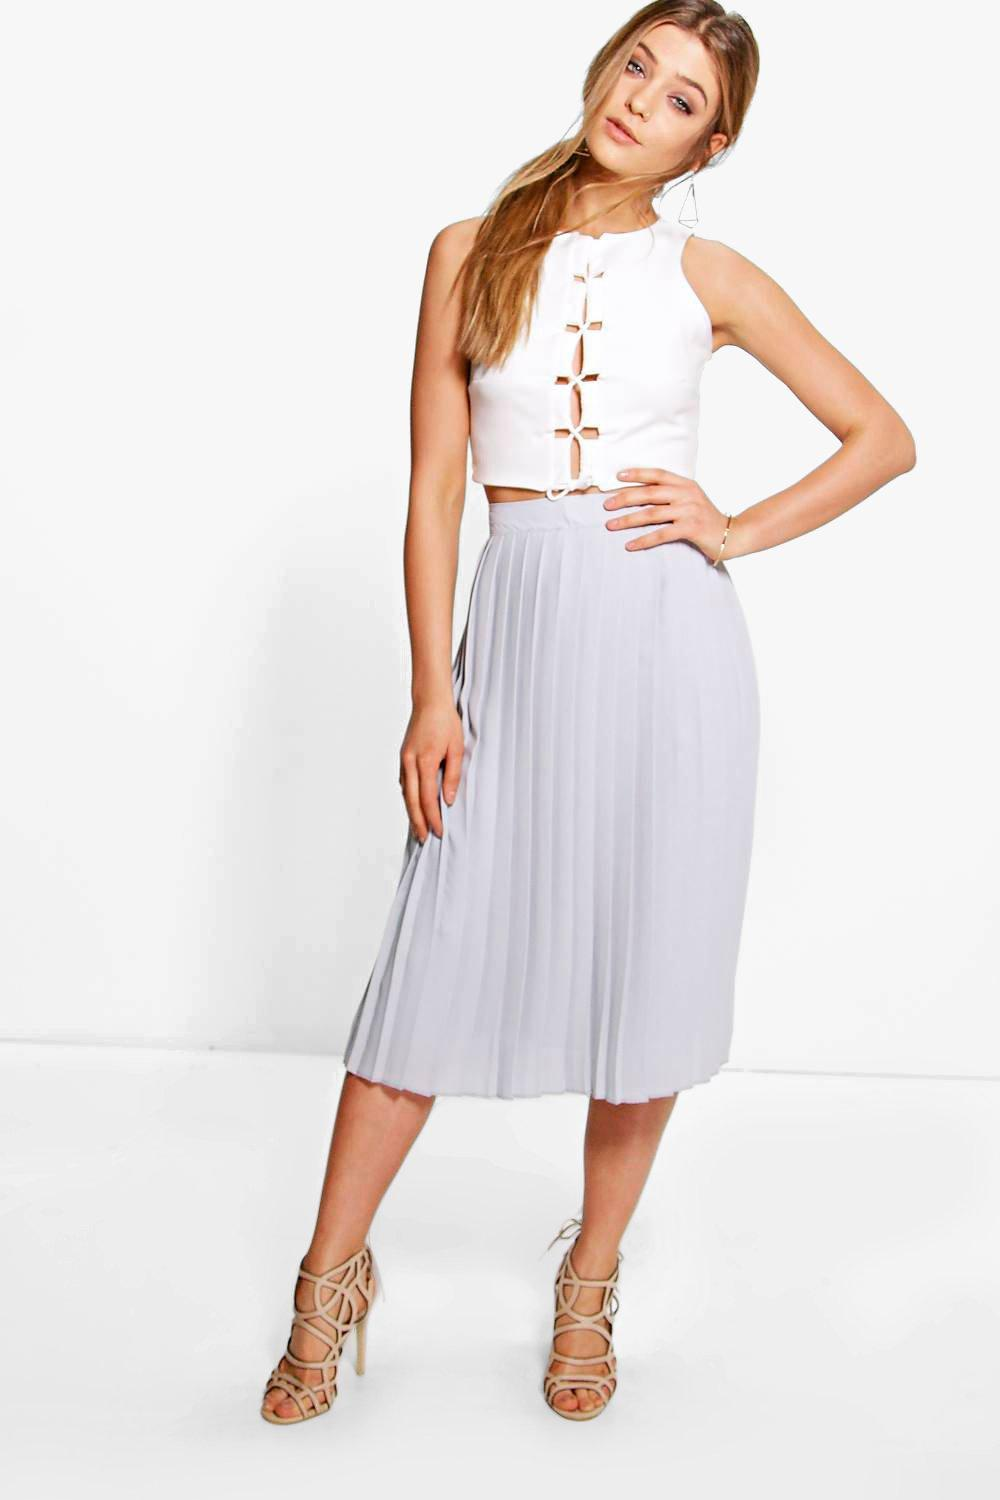 buy cheap grey pleated skirt compare s dresses